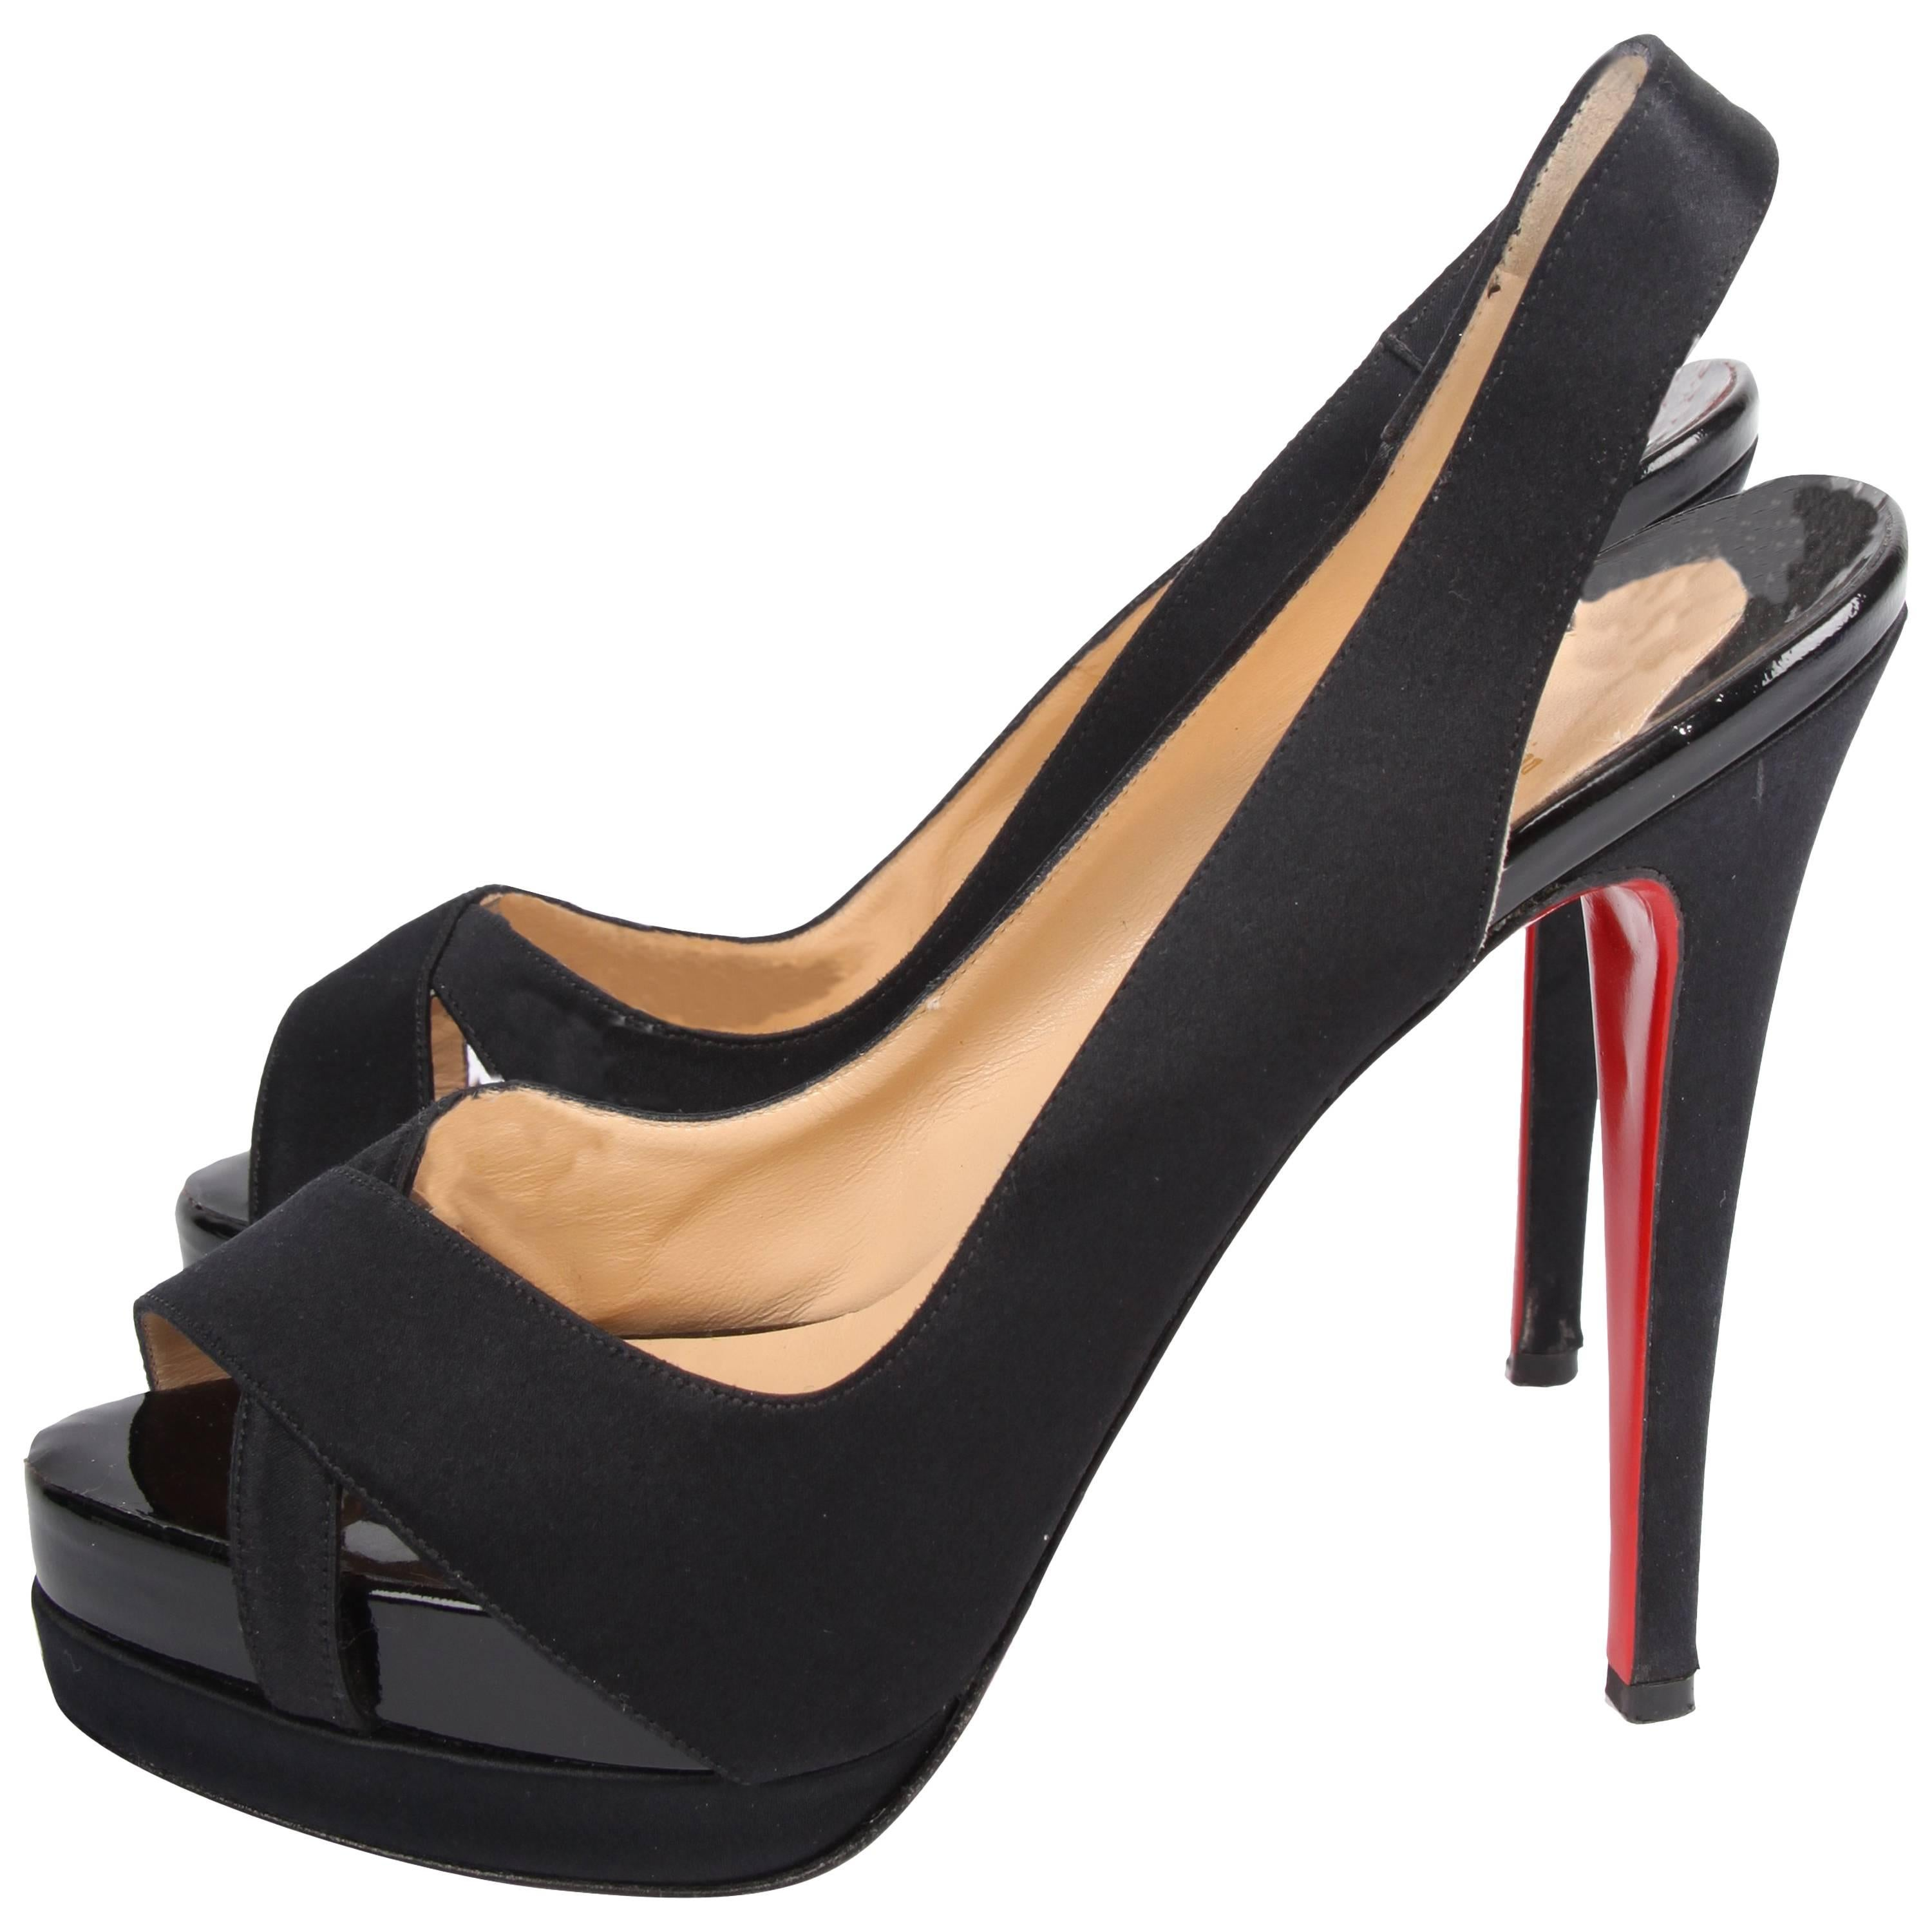 554a9b2cc5c6 Christian Louboutin Satin and Patent Leather Pumps - black at 1stdibs